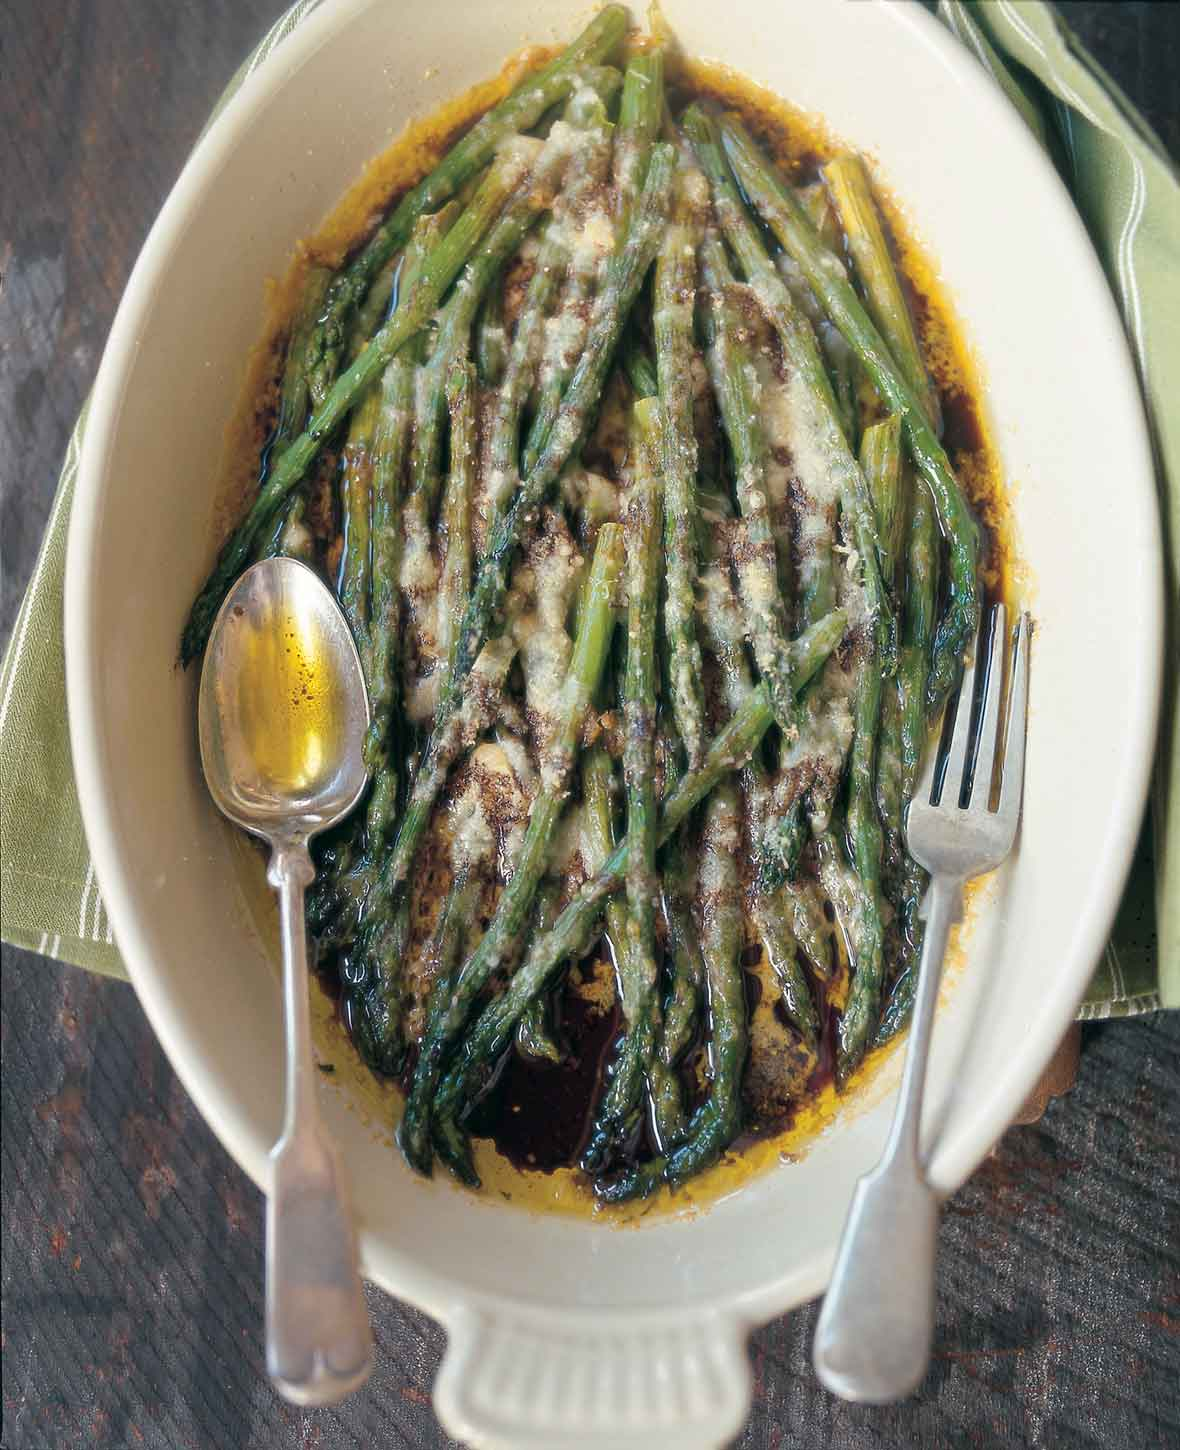 An oval serving dish filled with baked asparagus with Parmesan and balsamic vinegar with a fork and spoon resting on top.